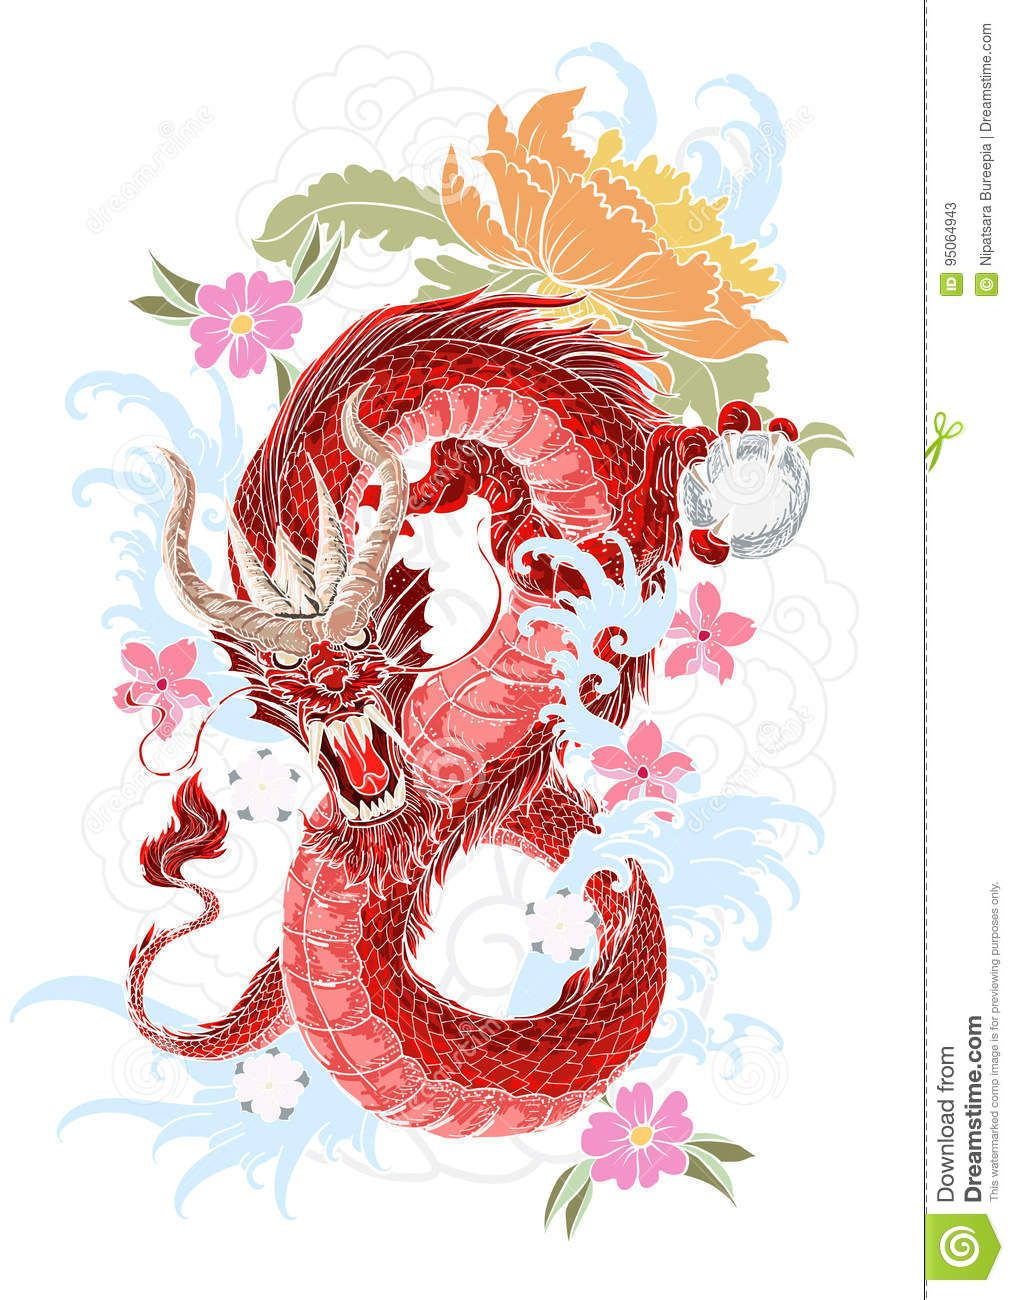 Pin By Rosada Jade Chung Haines On Dragons Japanese Flower Tattoo Dragon Tattoo Tattoo Japanese Style